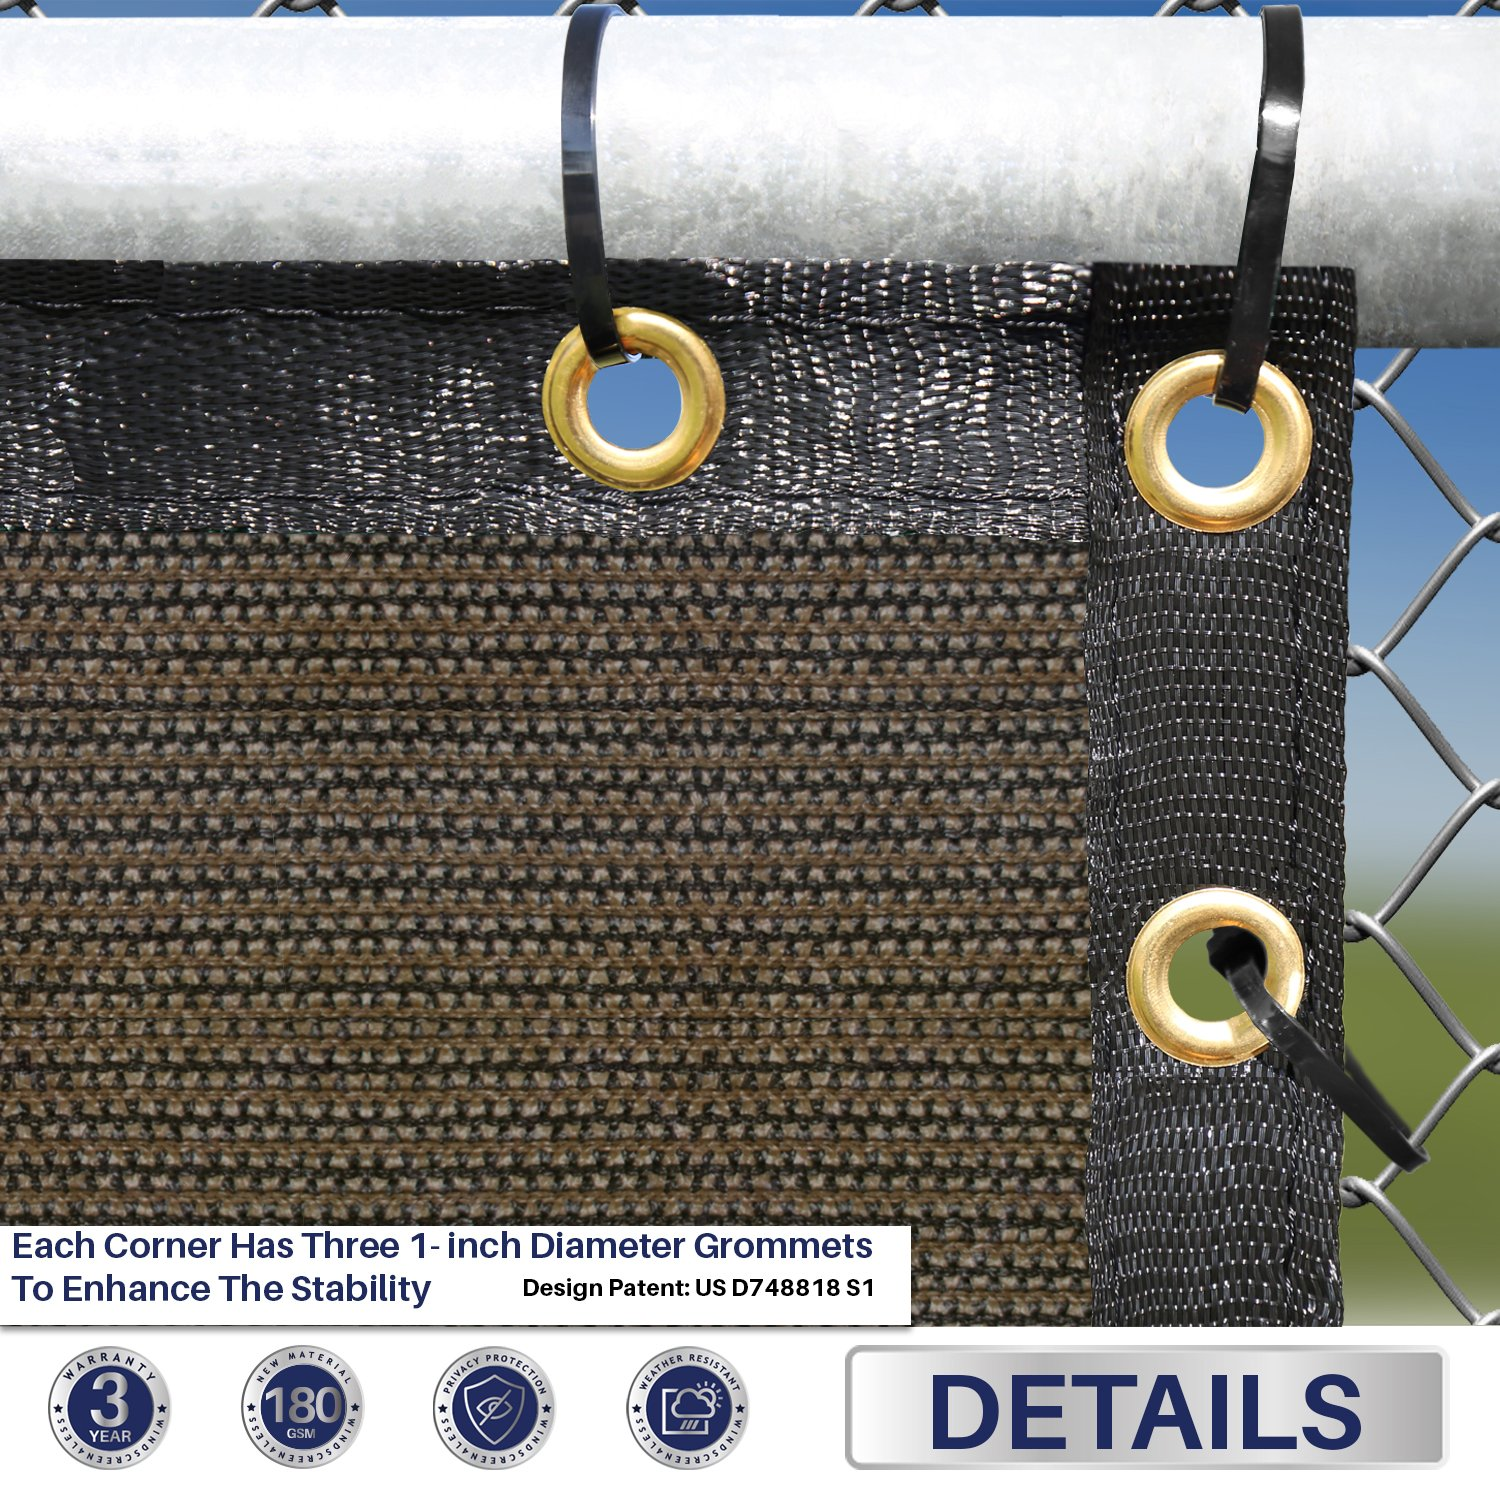 Windscreen4less Fence Privacy Screen 2 x 16 , Brown, Pergola Shade Cover Patio Canopy Sun Block,180 GSM, 95 Privacy Blockage, Mesh Fabric with Brass Gromment, Customized